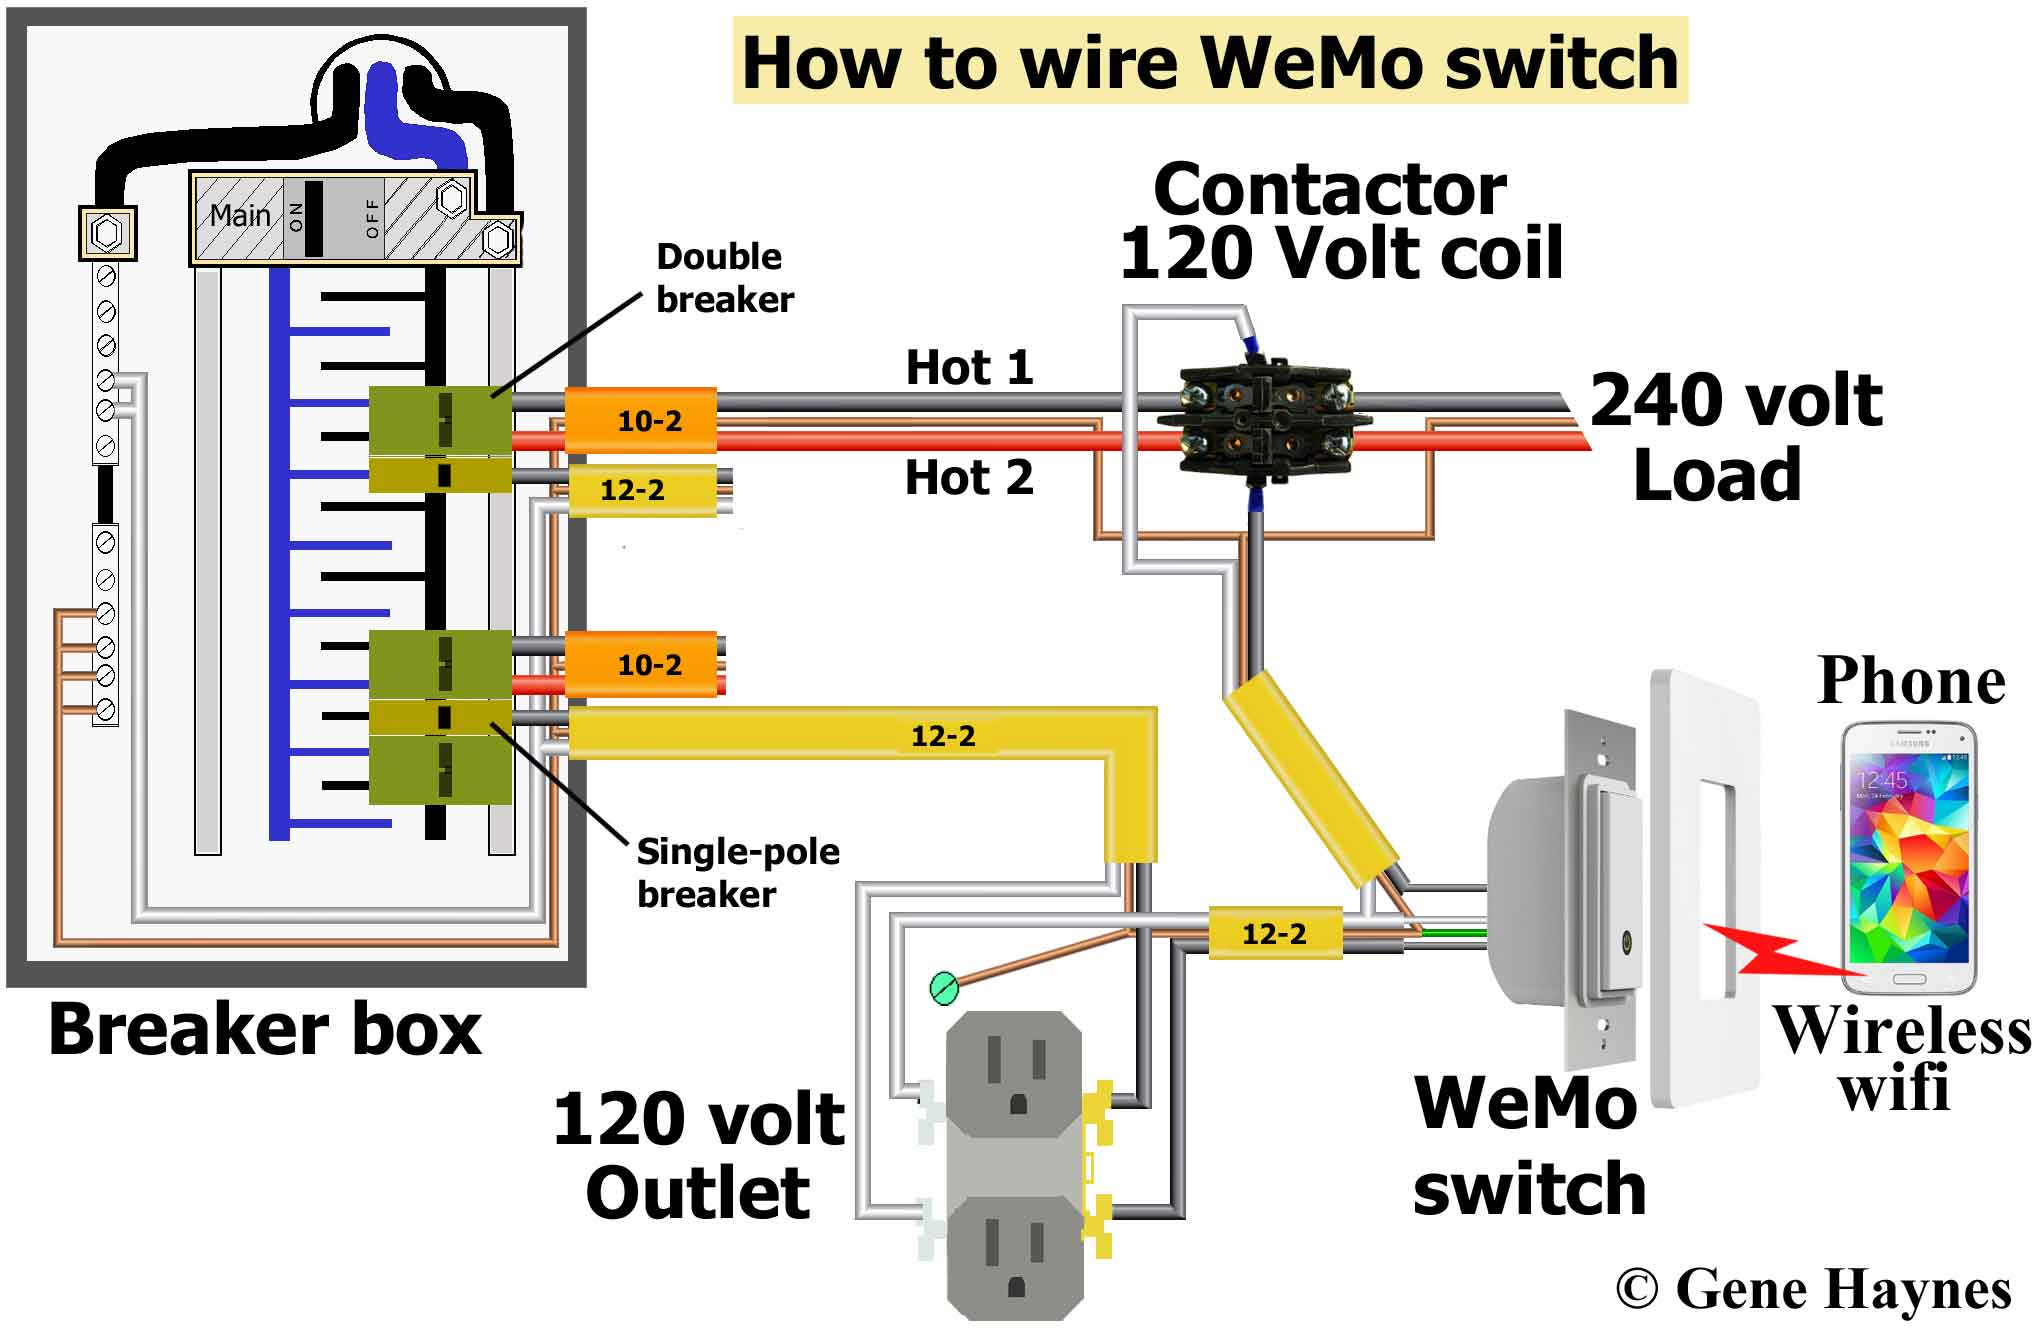 WeMo switch wiring illustration 3 control 240 volt with wemo volt free contact wiring diagram at crackthecode.co